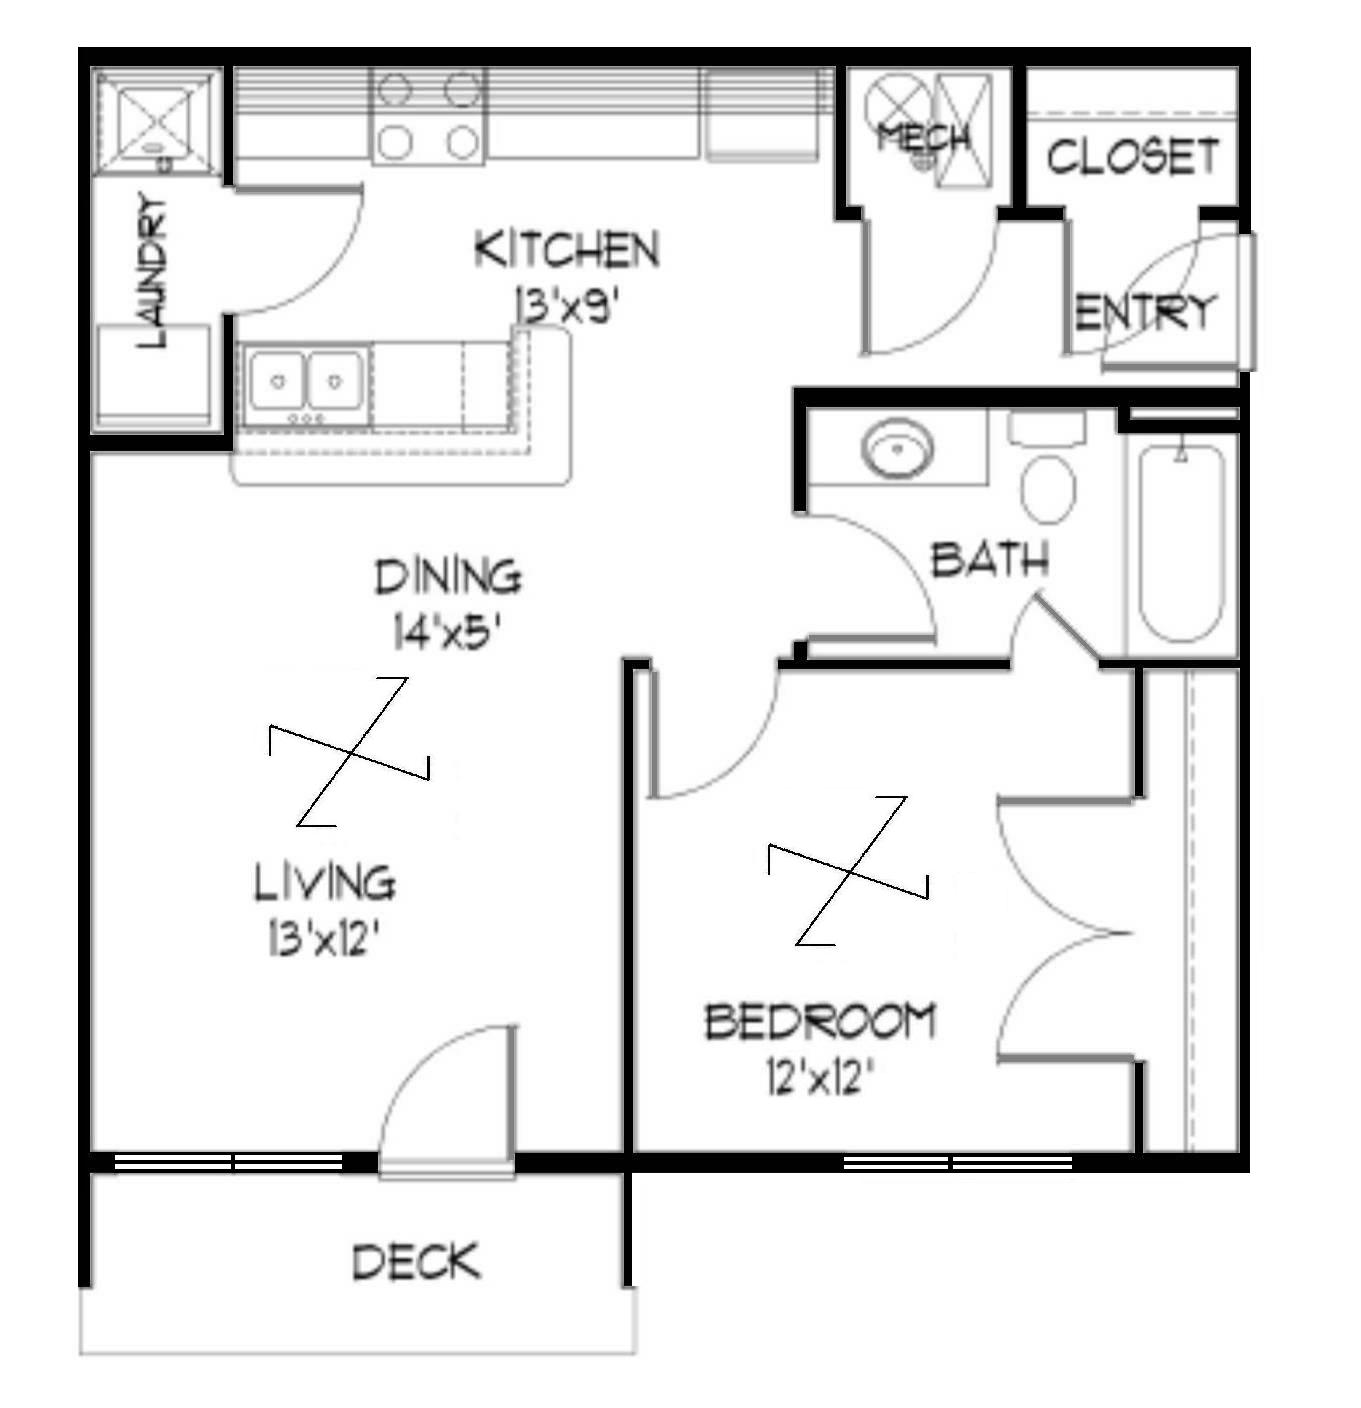 Average Square Footage Of A 2 Bedroom Apartment